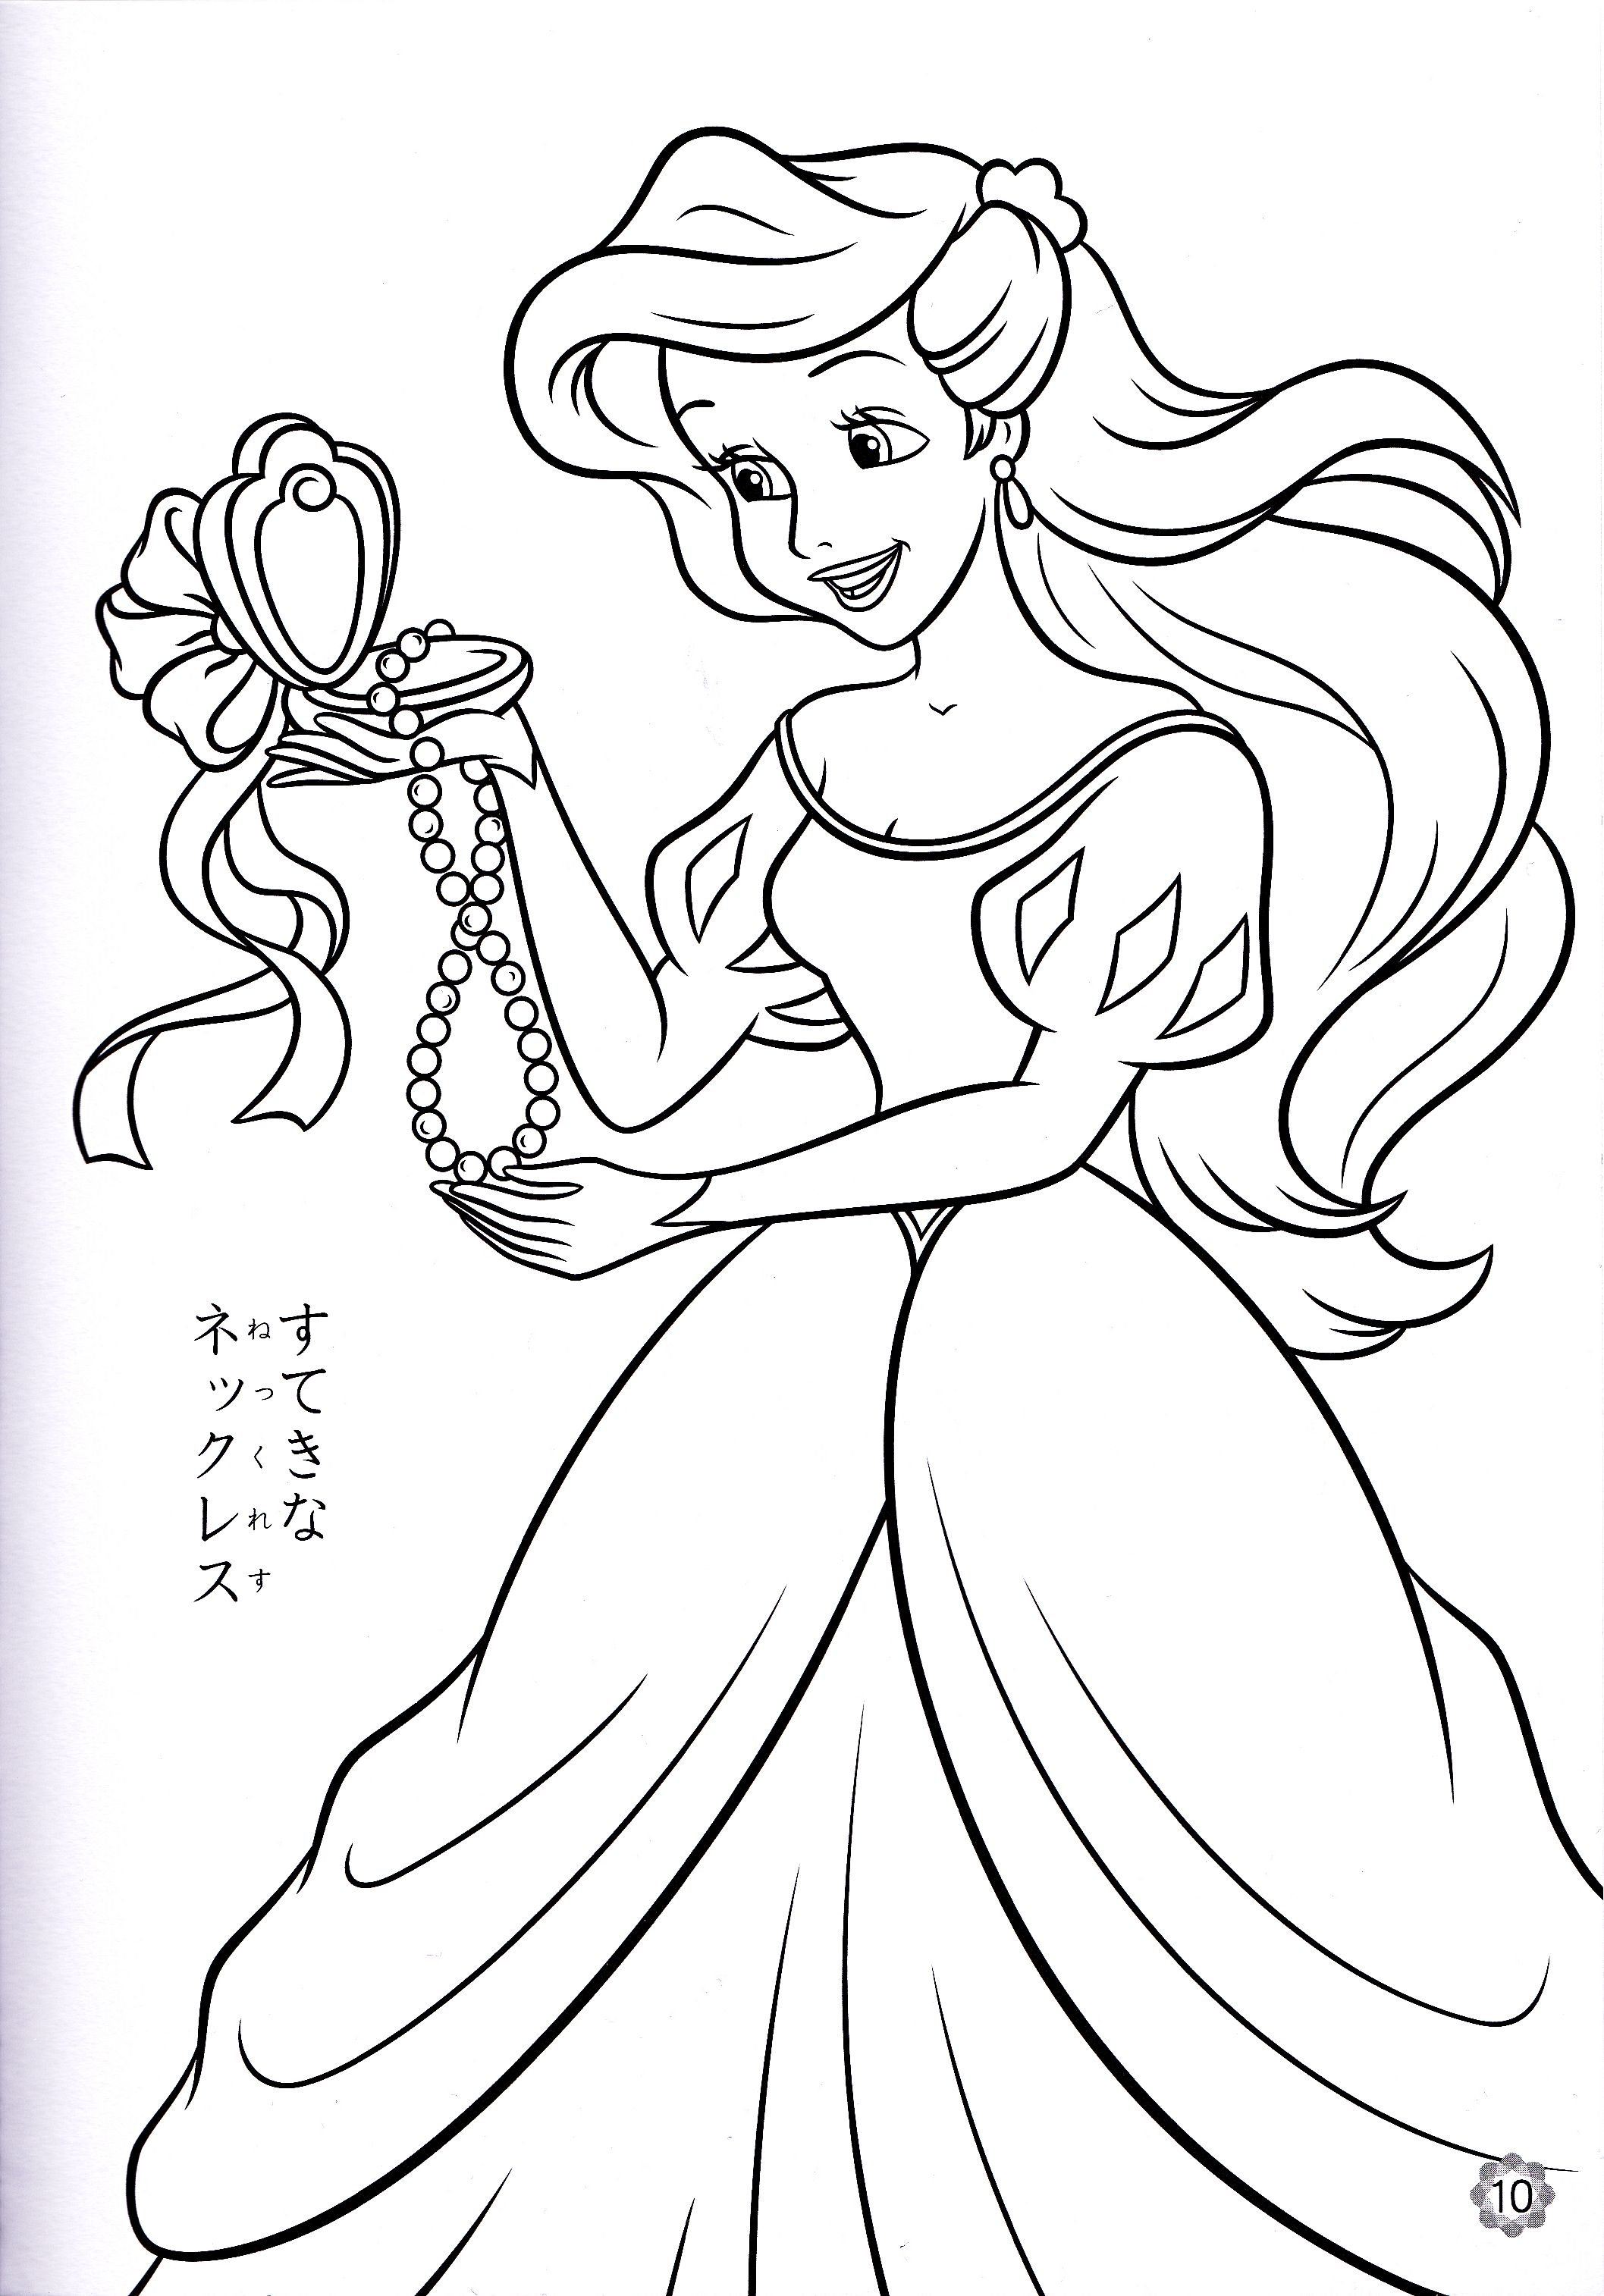 free printable disney coloring books disney coloring book pages free printable disney princess coloring - Disney Princess Coloring Pages Free Printable